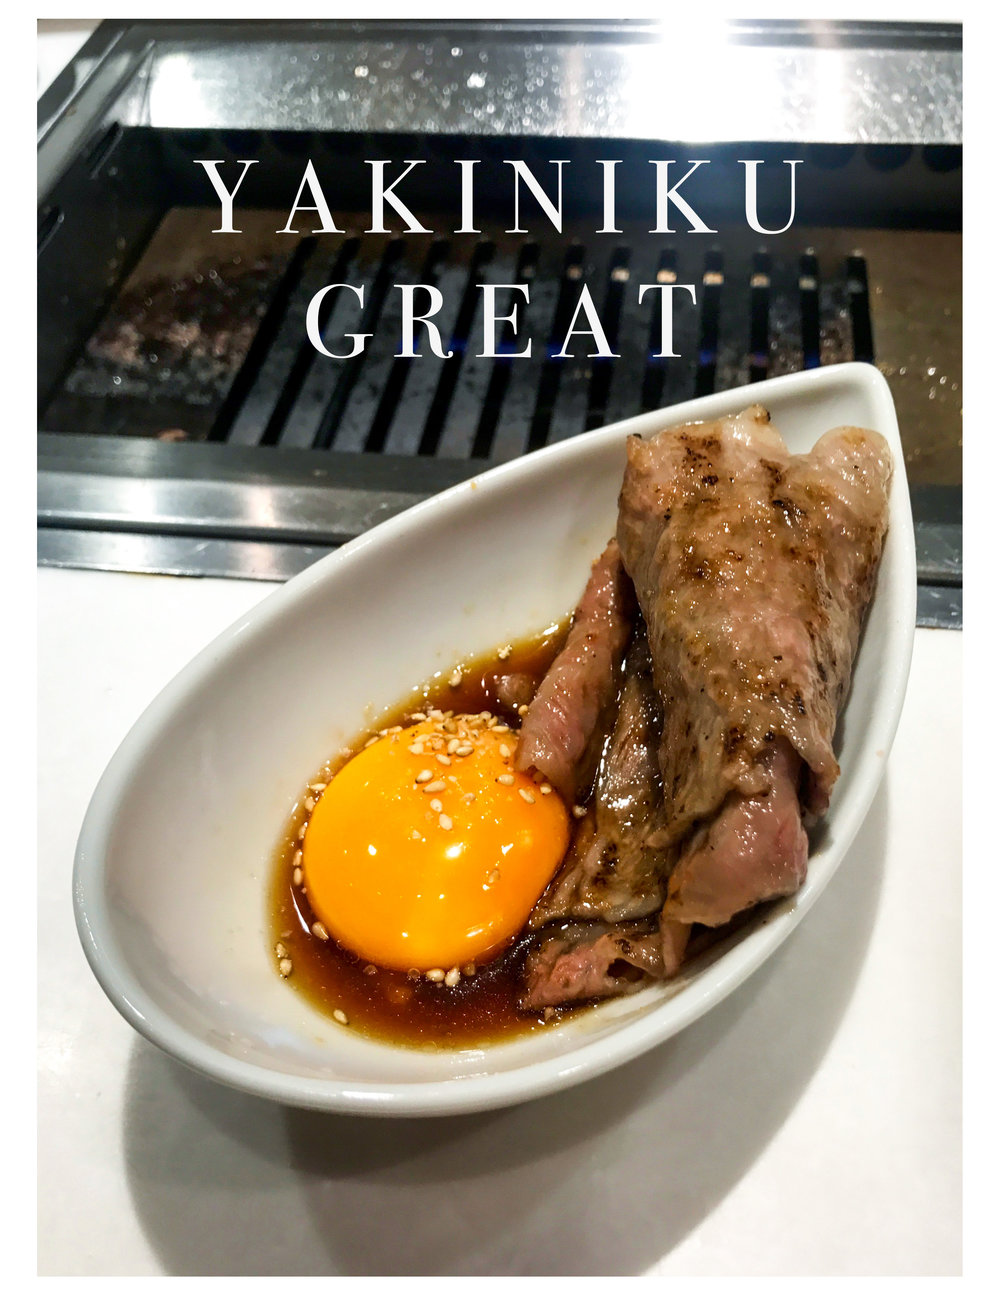 Yakiniku Great